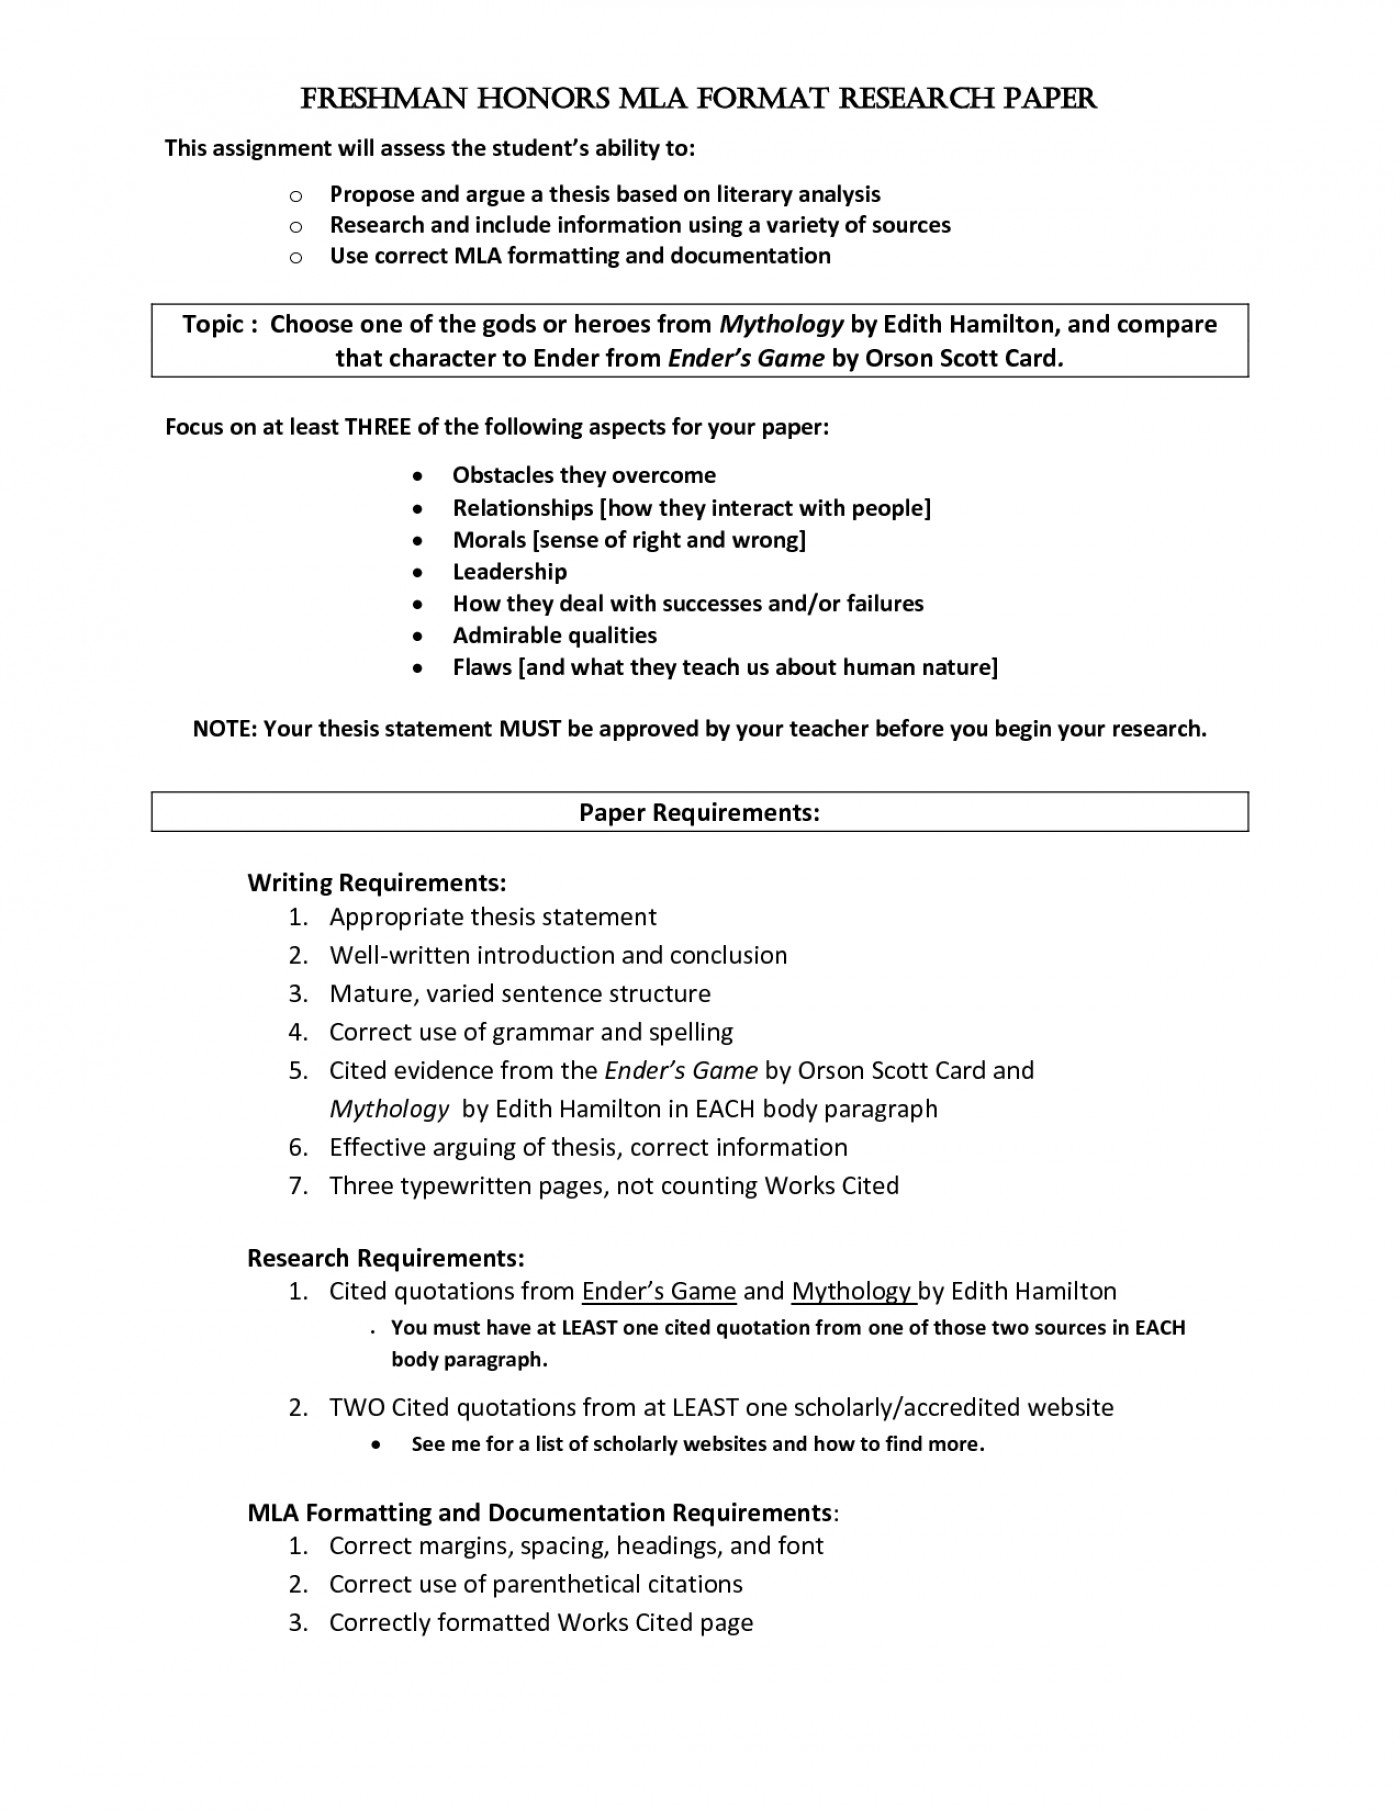 example research topic proposal paper bunch ideas of mla format    example research topic proposal paper bunch ideas of mla format essay  sample template writing sensational  what is the thesis in an essay also essay about science english essays examples